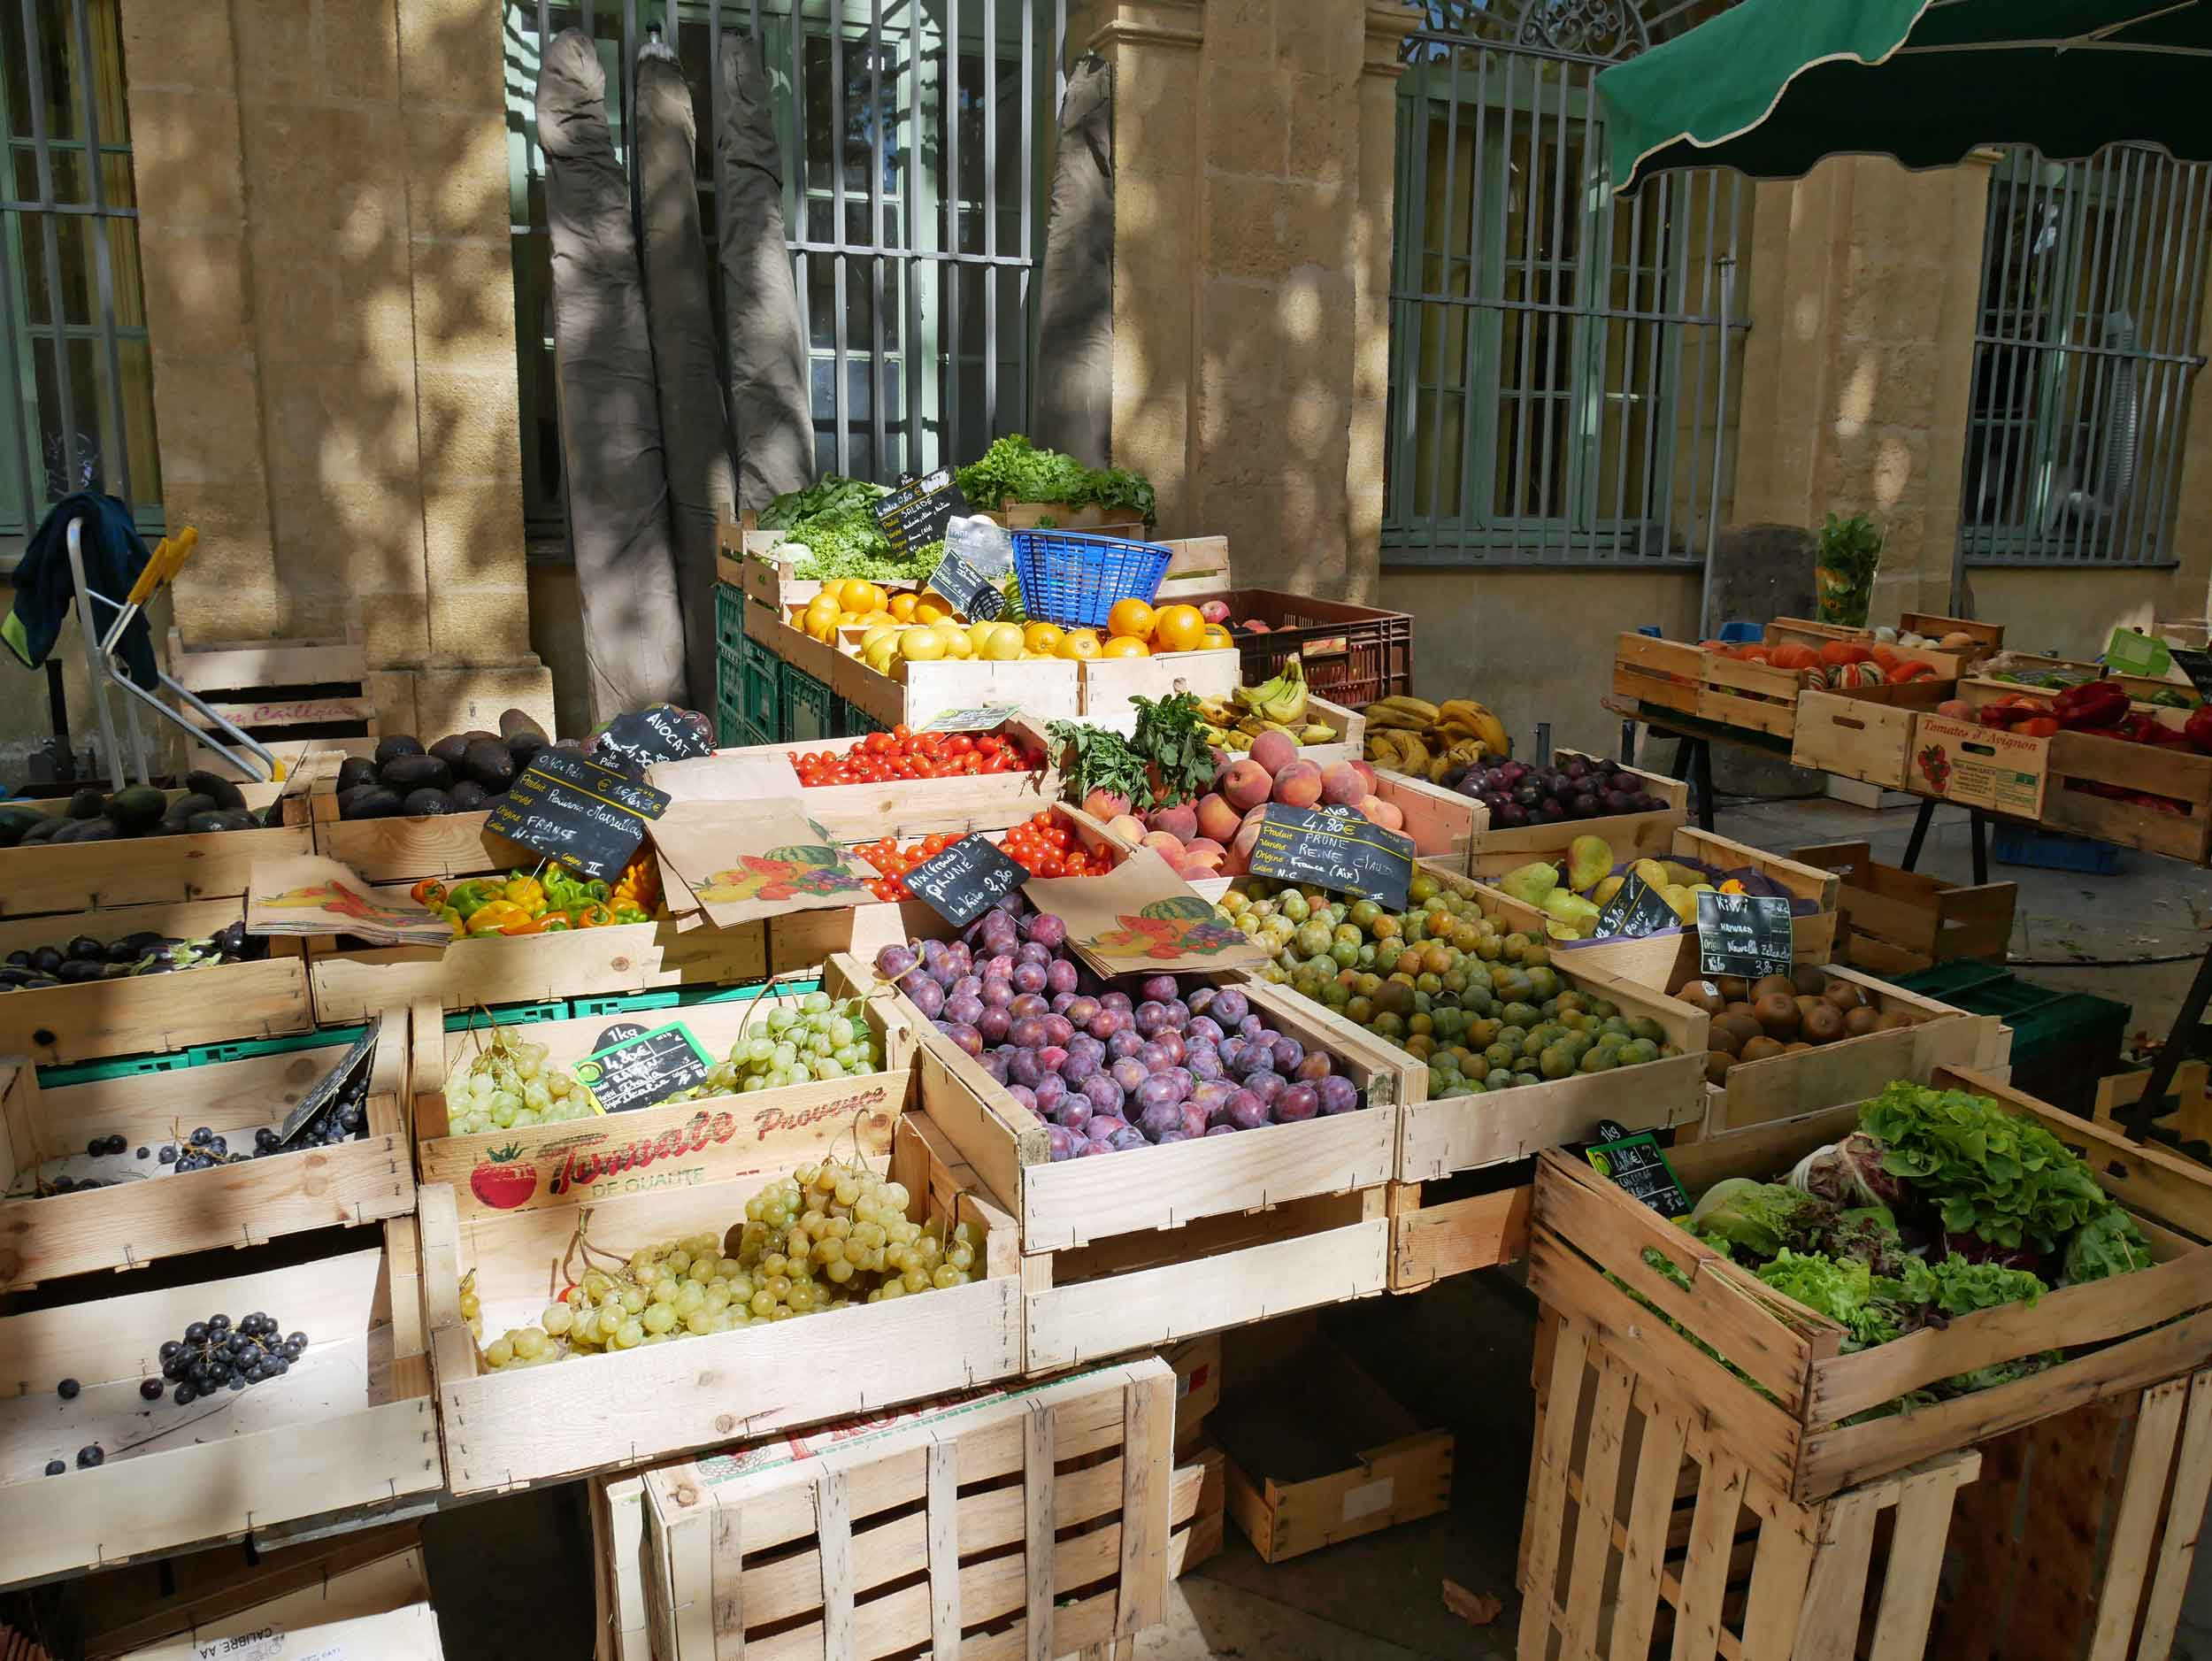 It doesn't get better than a September farmers' market in the South of France!